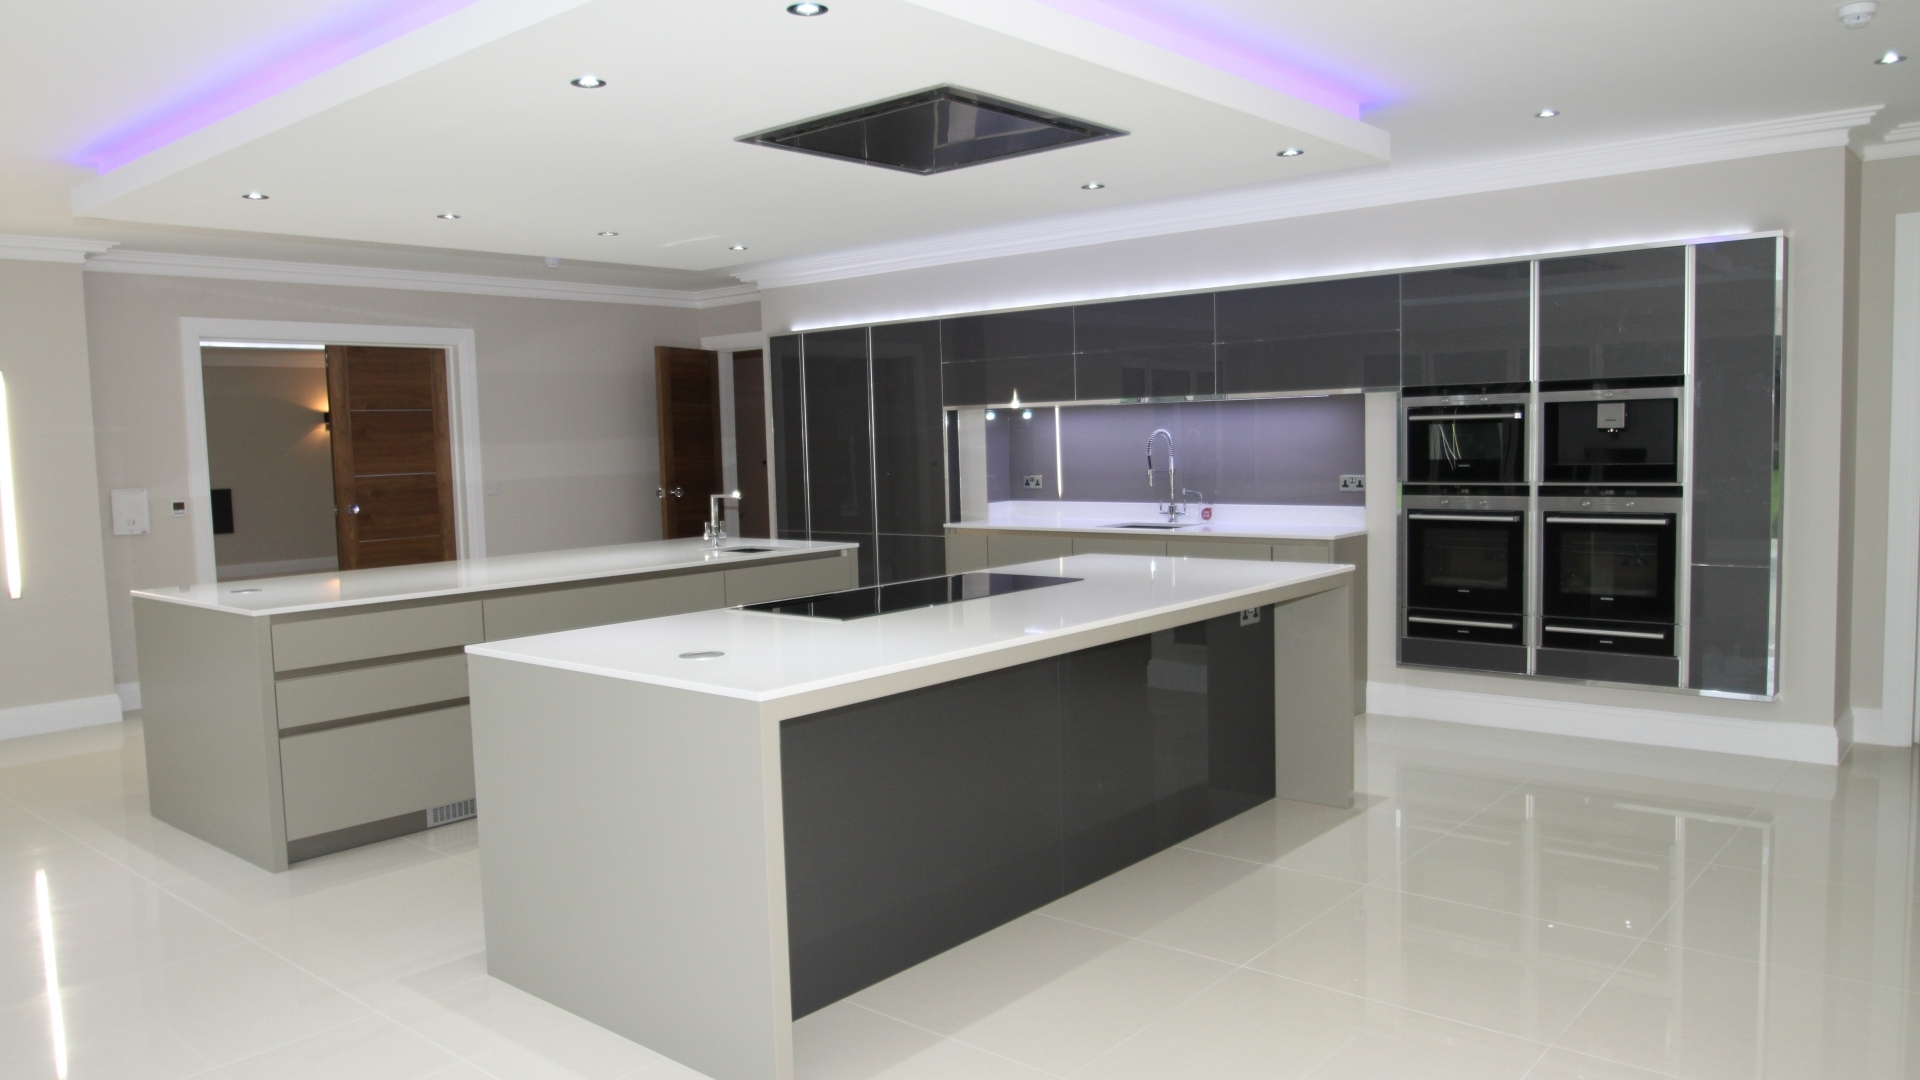 Beckermann kitchens german kitchens manufacturers for Kitchen manufacturers